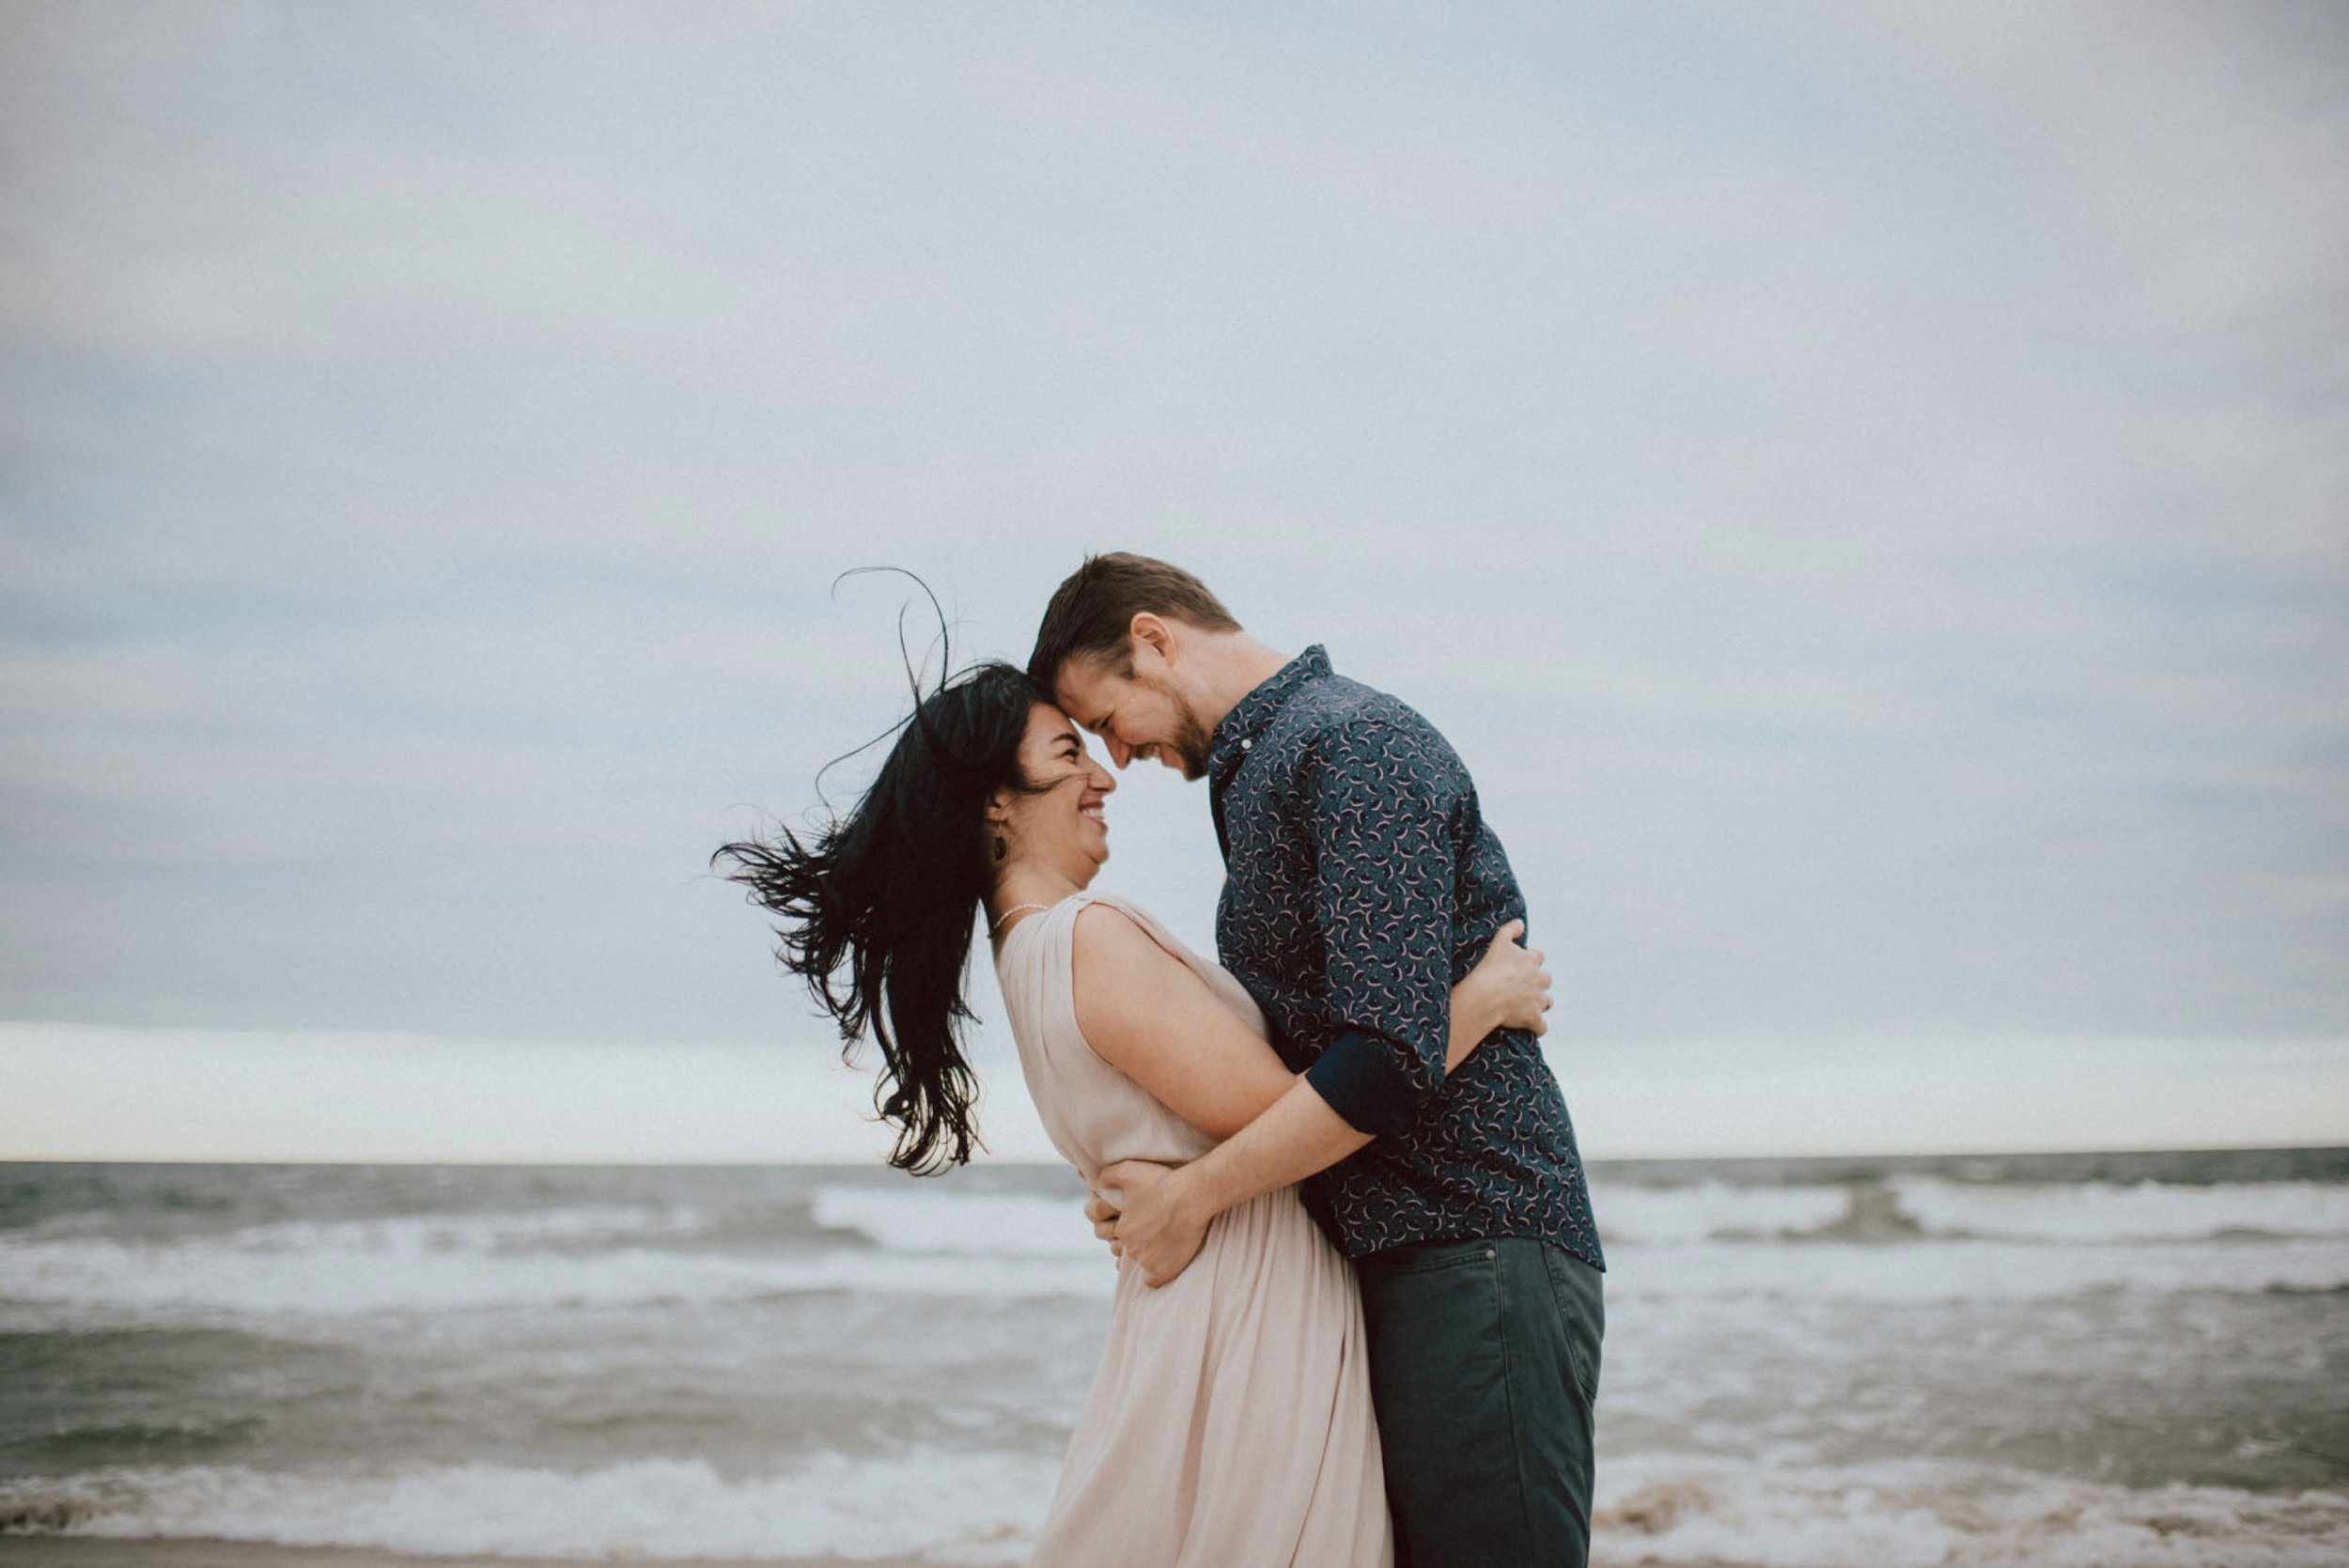 Long-beach-island-engagement-session-24.jpg